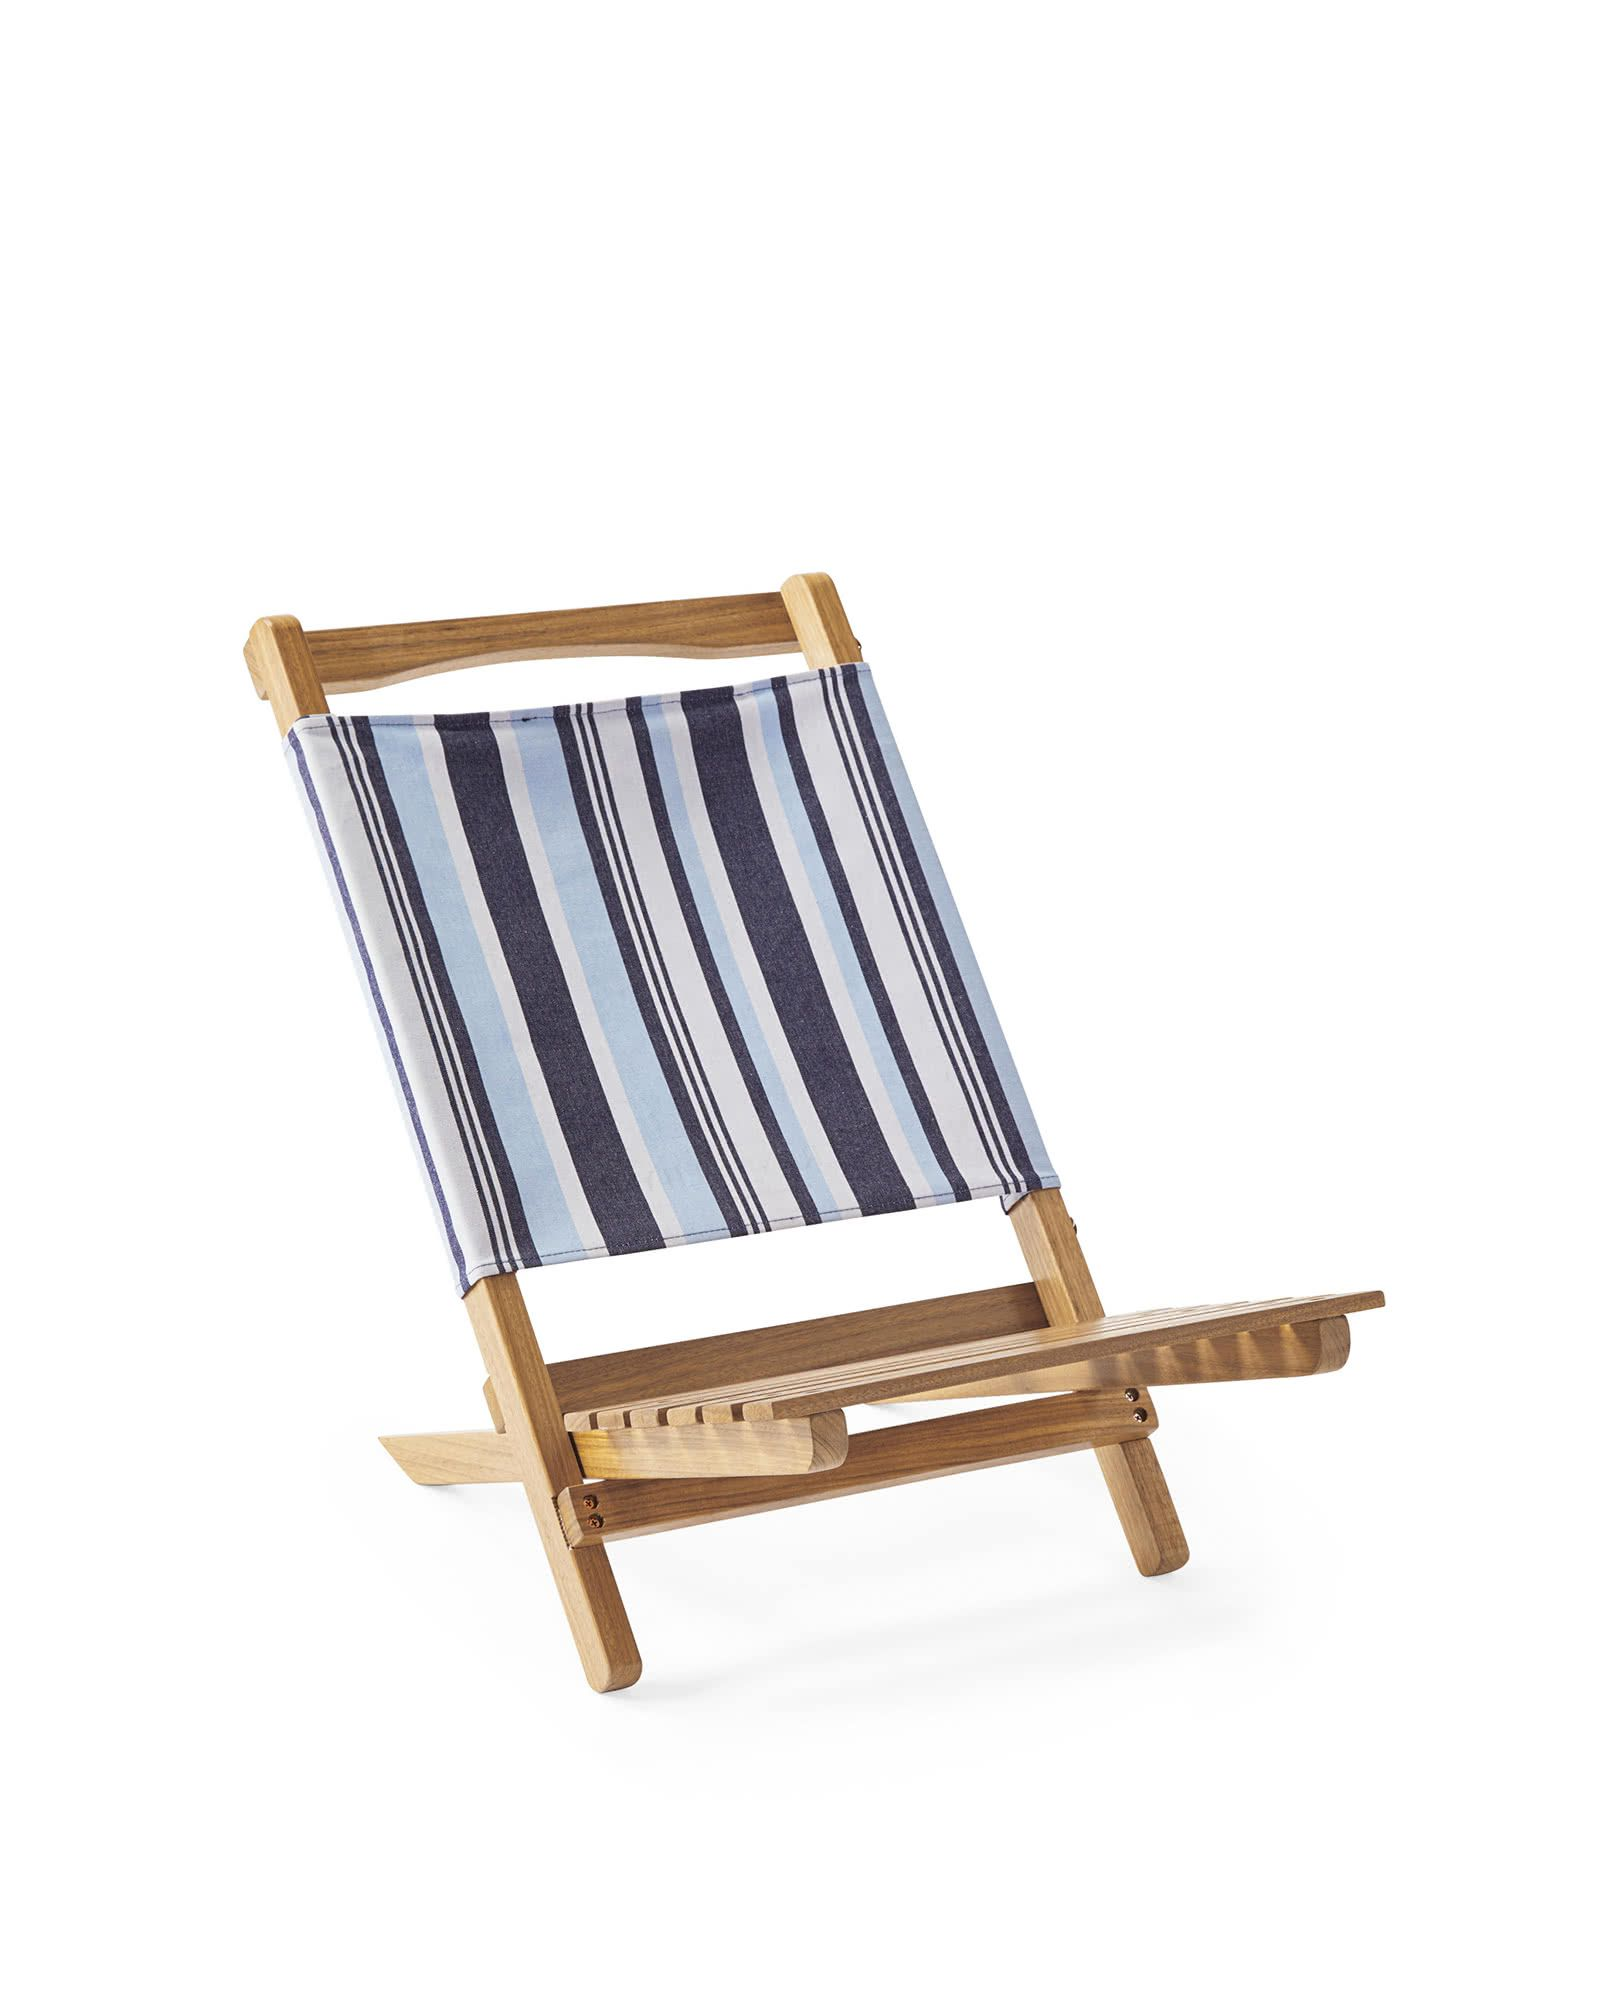 Hyannis Surf Chair